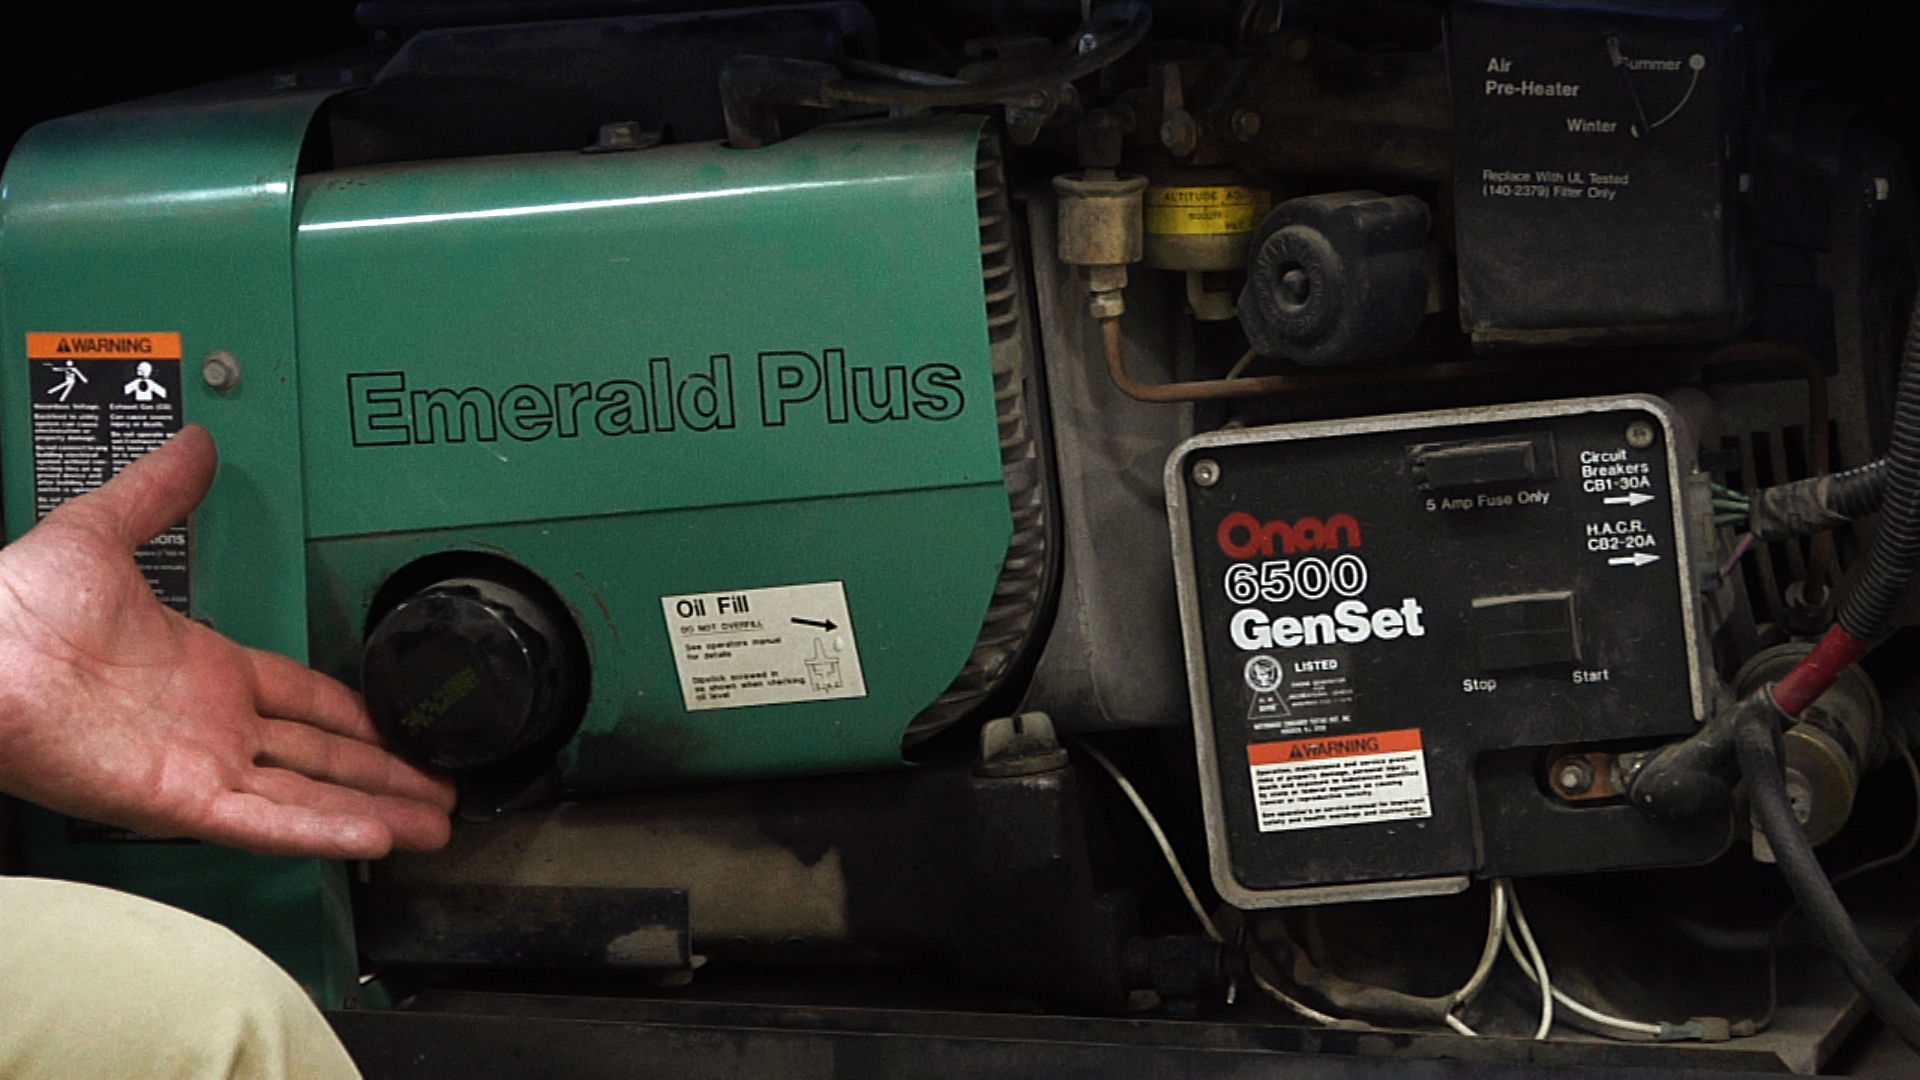 Used Onan Kw Diesel Genset For Sale furthermore Kumho R Regroovable Power Fleet Truck Tire Lbs Max Load likewise Onan Rst Inside moreover Lot Of Us Range  mercial Burner Range Oven Front Burner Assy further Alamo Weldment Lock Up Arm Winch Cylinder Support Stand Hydro. on onan generator electrical panel